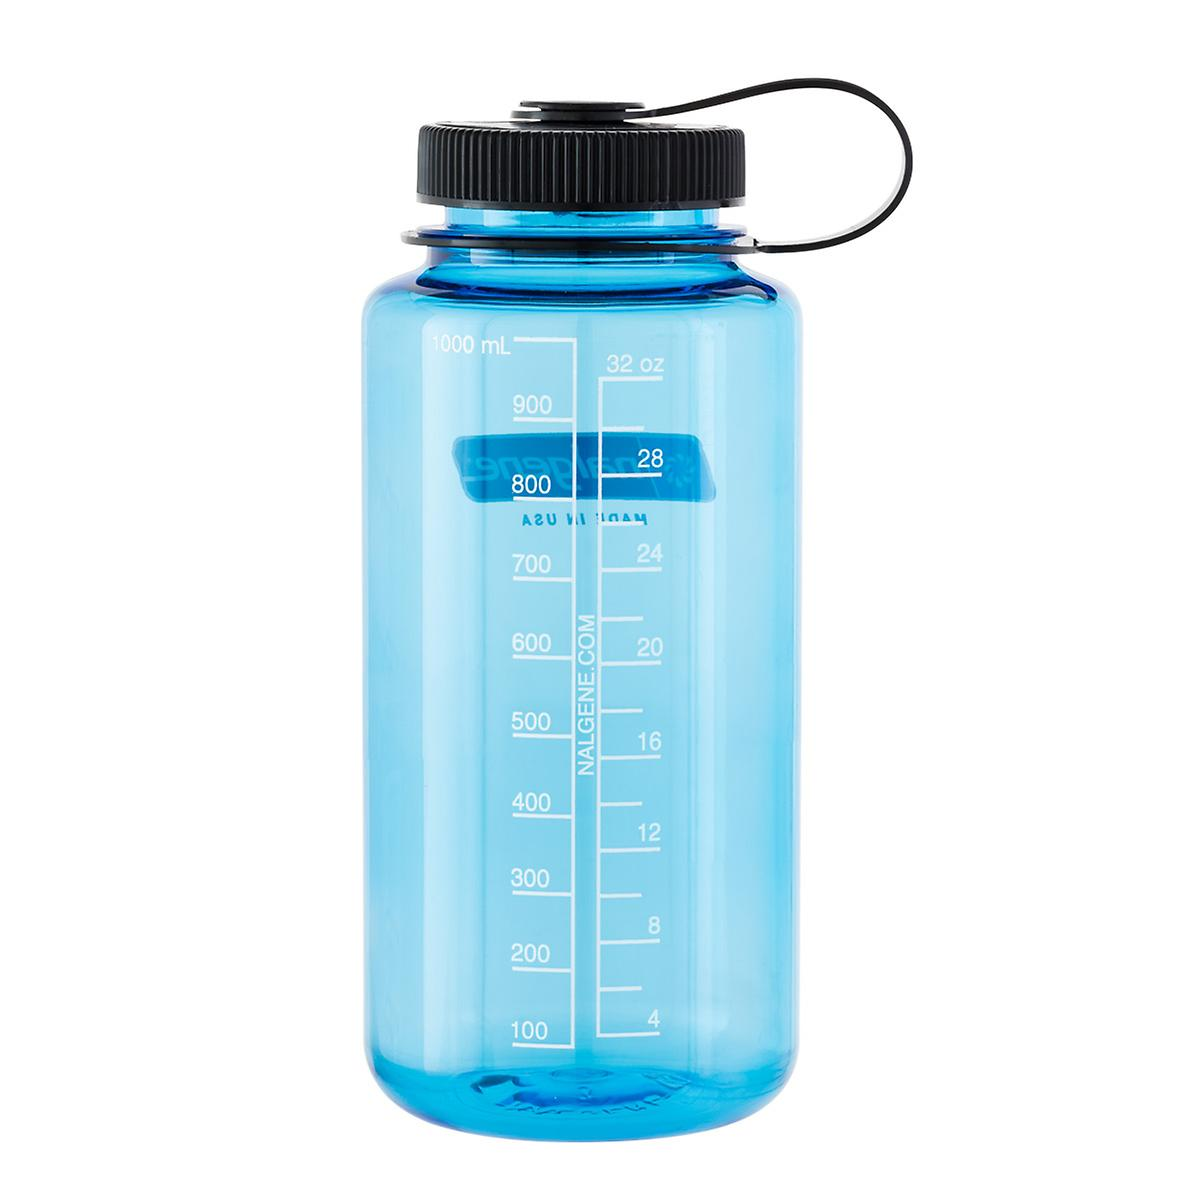 32 oz. Blue Nalgene Leakproof Water Bottle | The Container Store